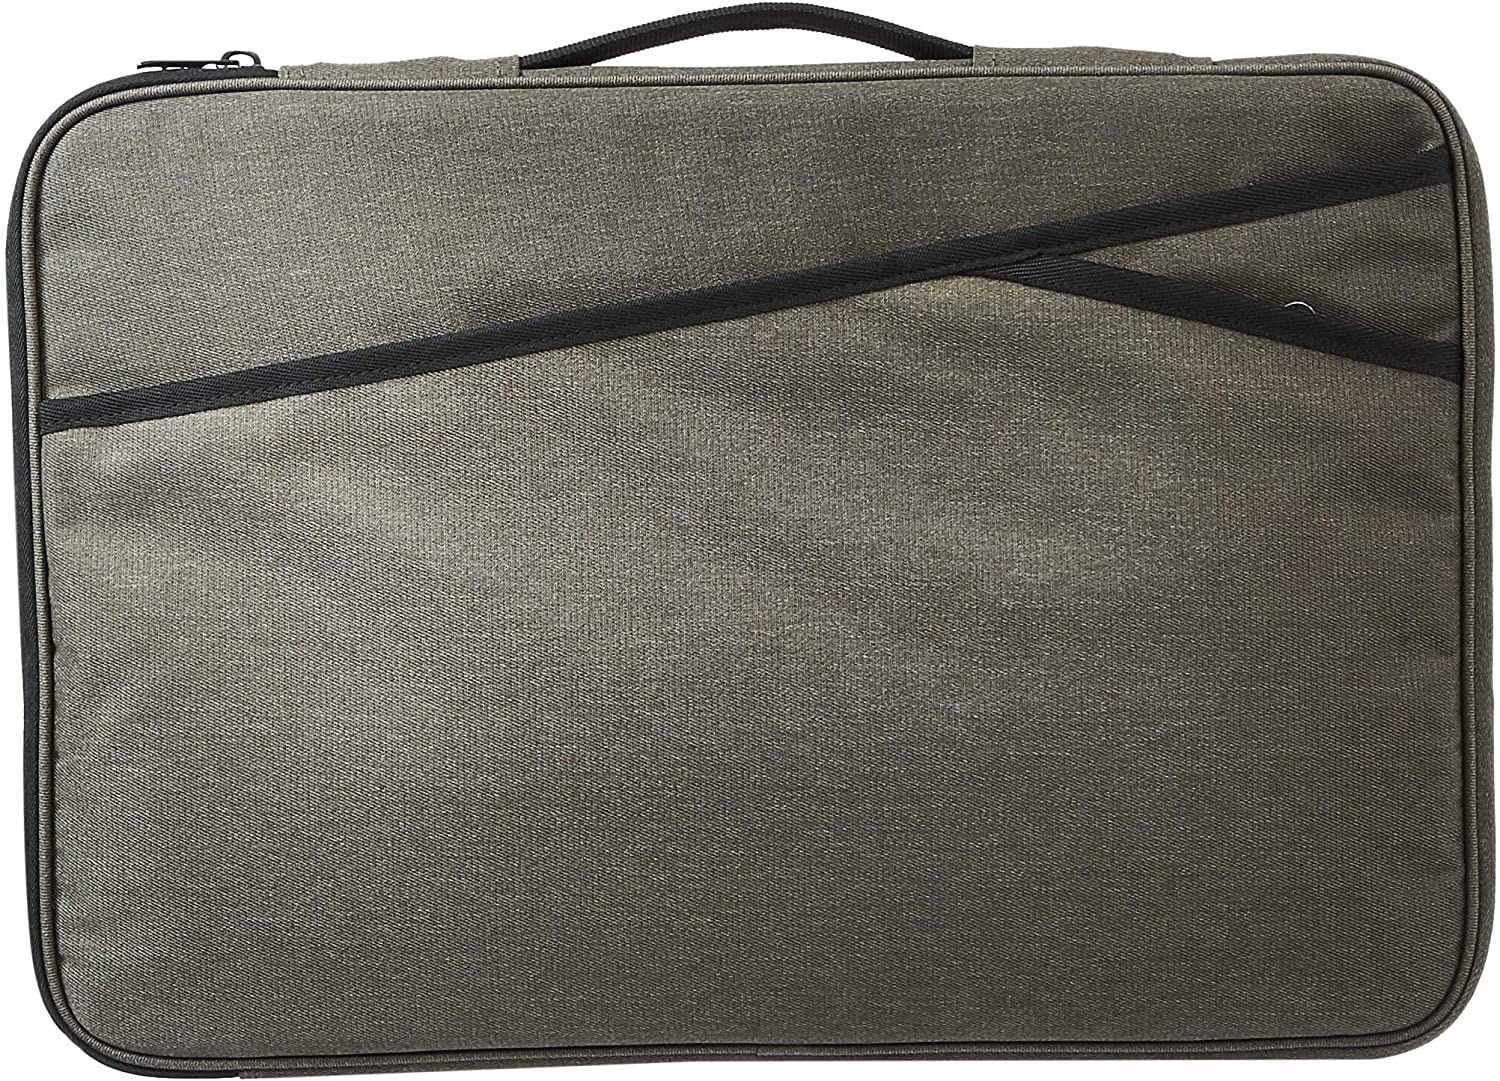 AmazonBasics Laptop Sleeve Case Bag - 17-Inch, Army Green